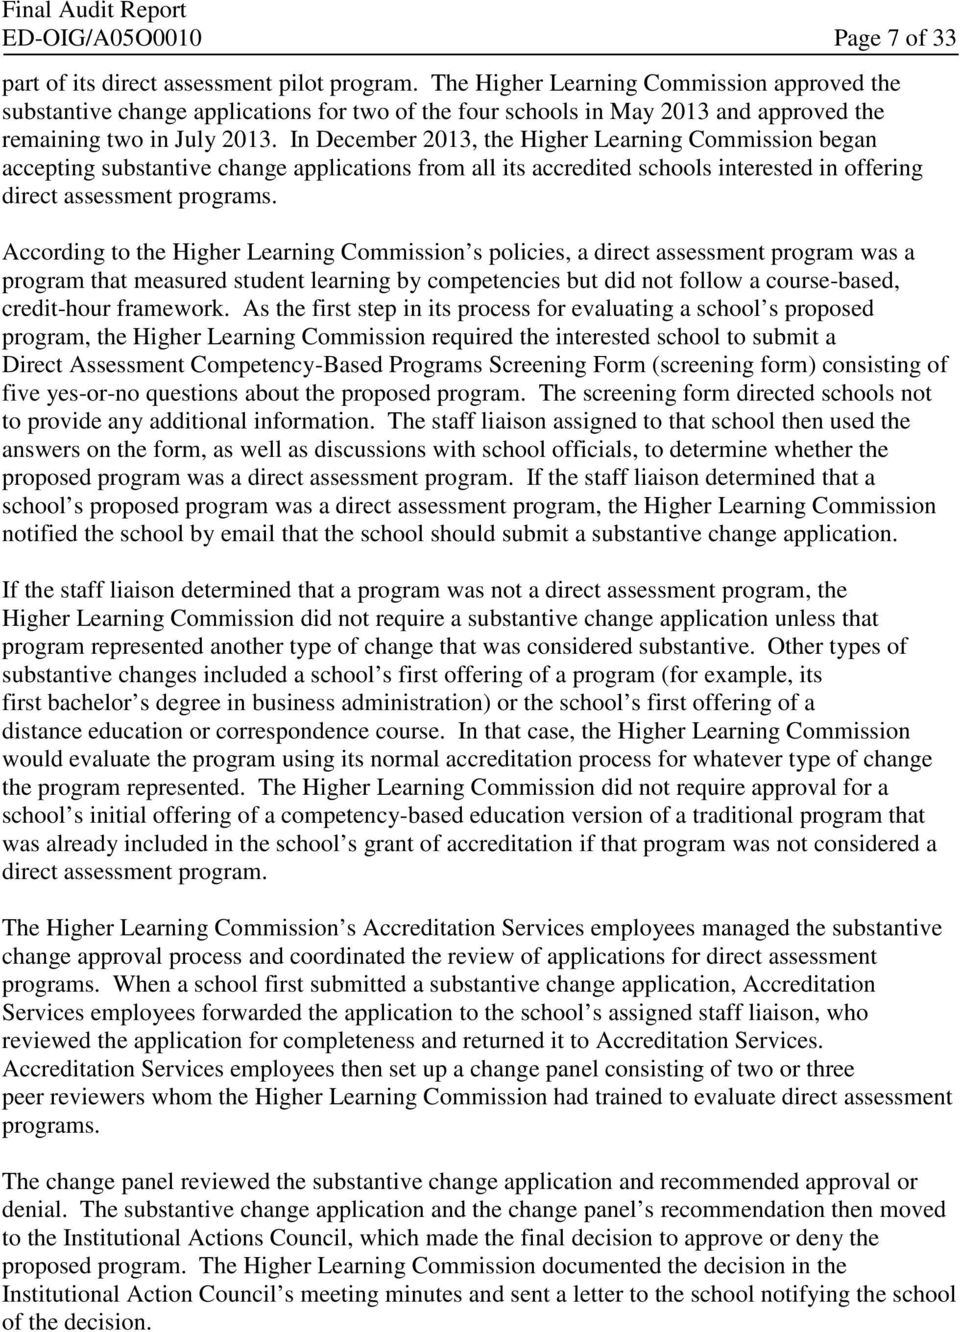 In December 2013, the Higher Learning Commission began accepting substantive change applications from all its accredited schools interested in offering direct assessment programs.